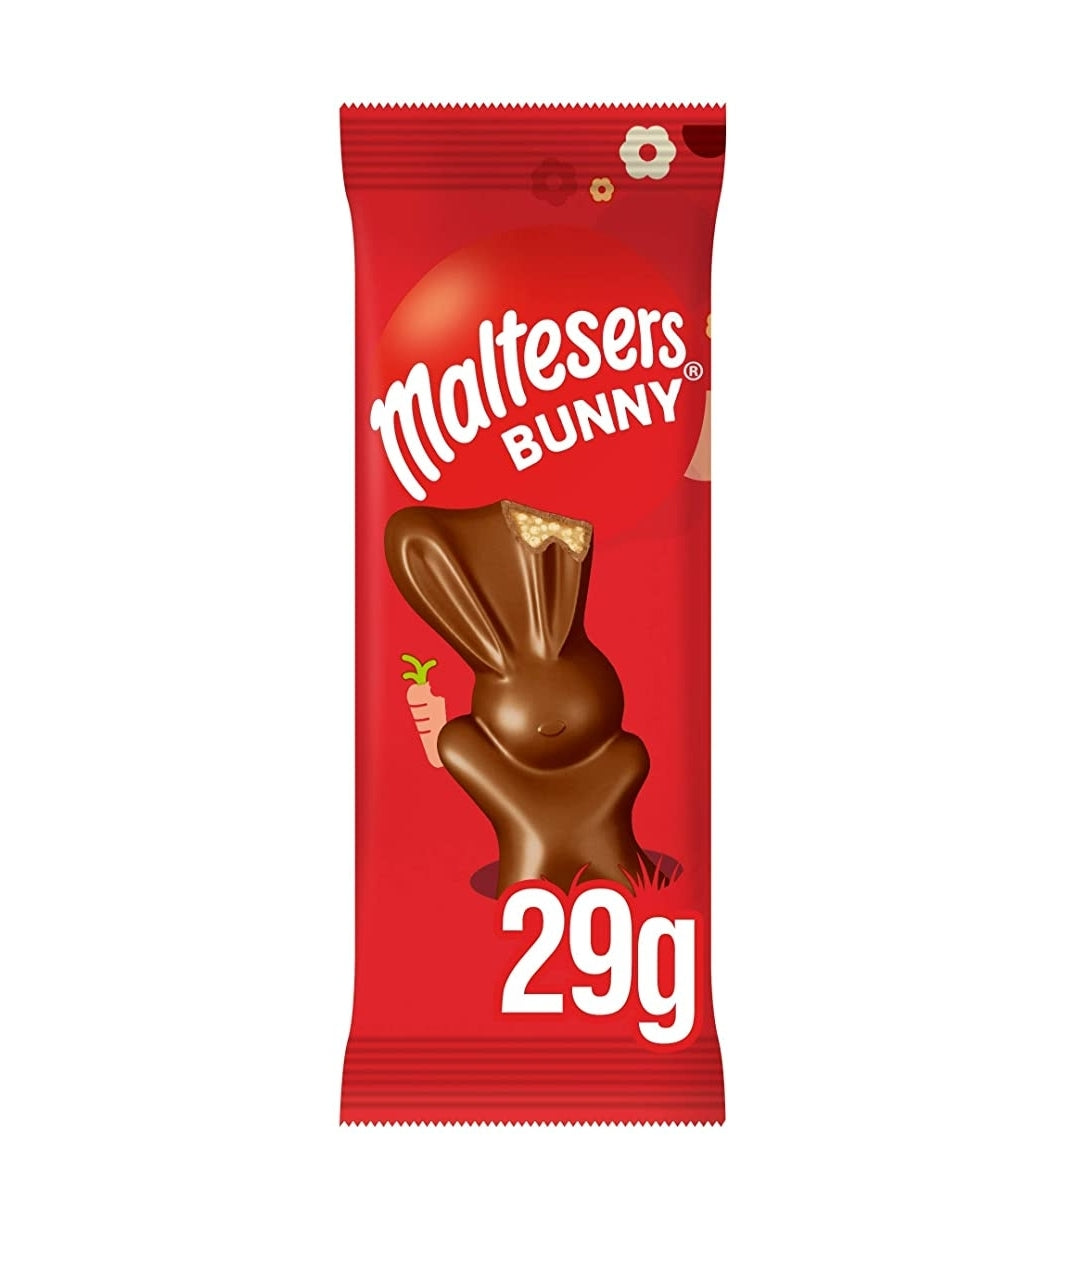 Maltesers Easter Bunny Chocolate - 29g, Food Items by Dog In A Box